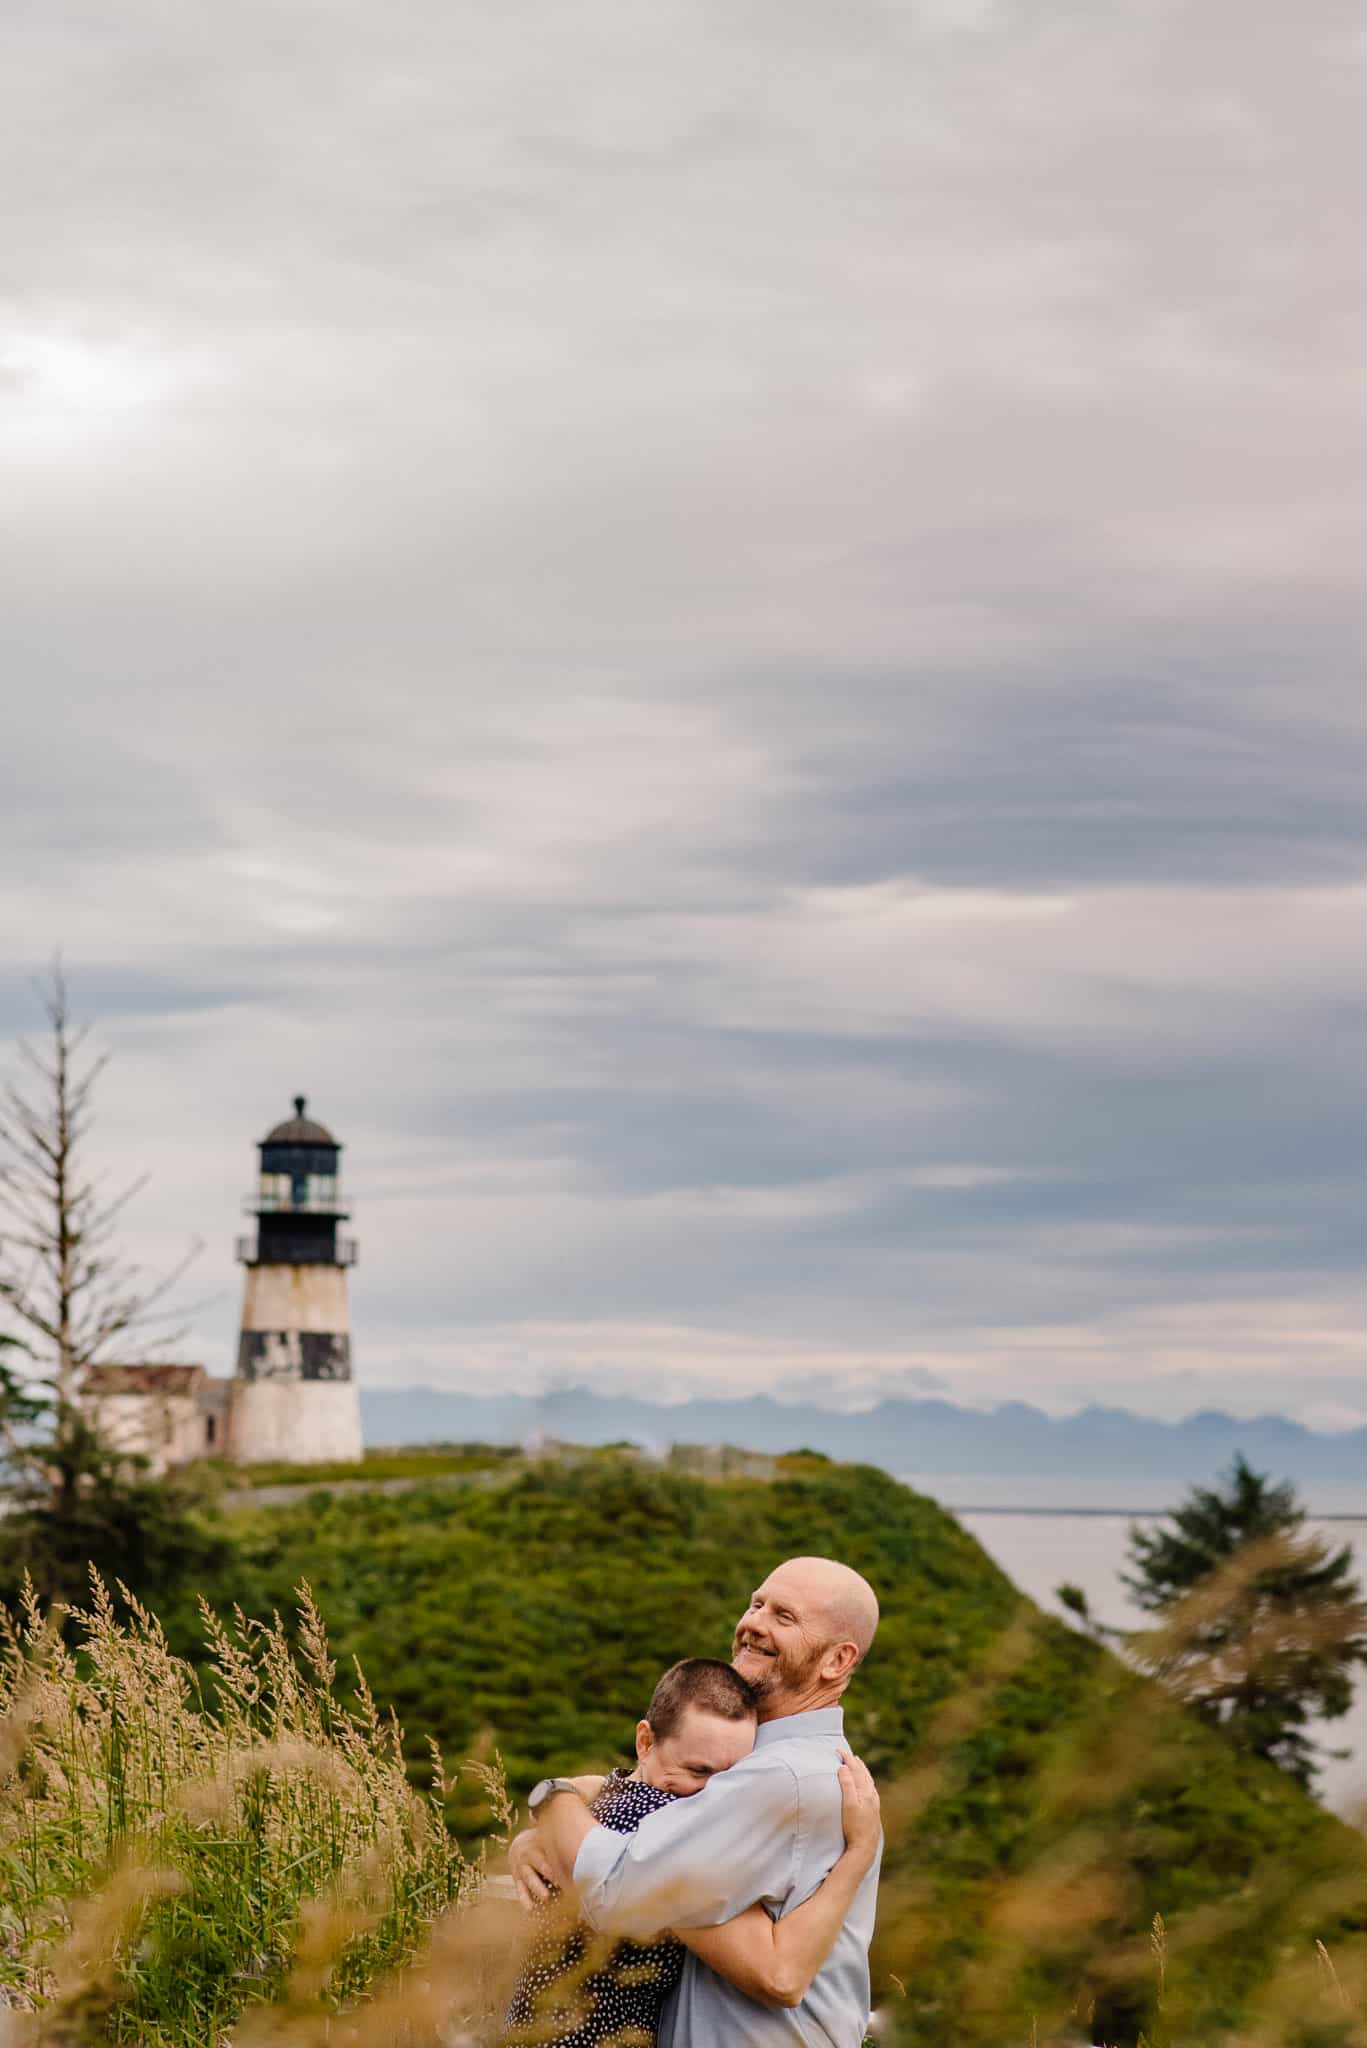 couples hugging near the ocean with a lighthouse in the background